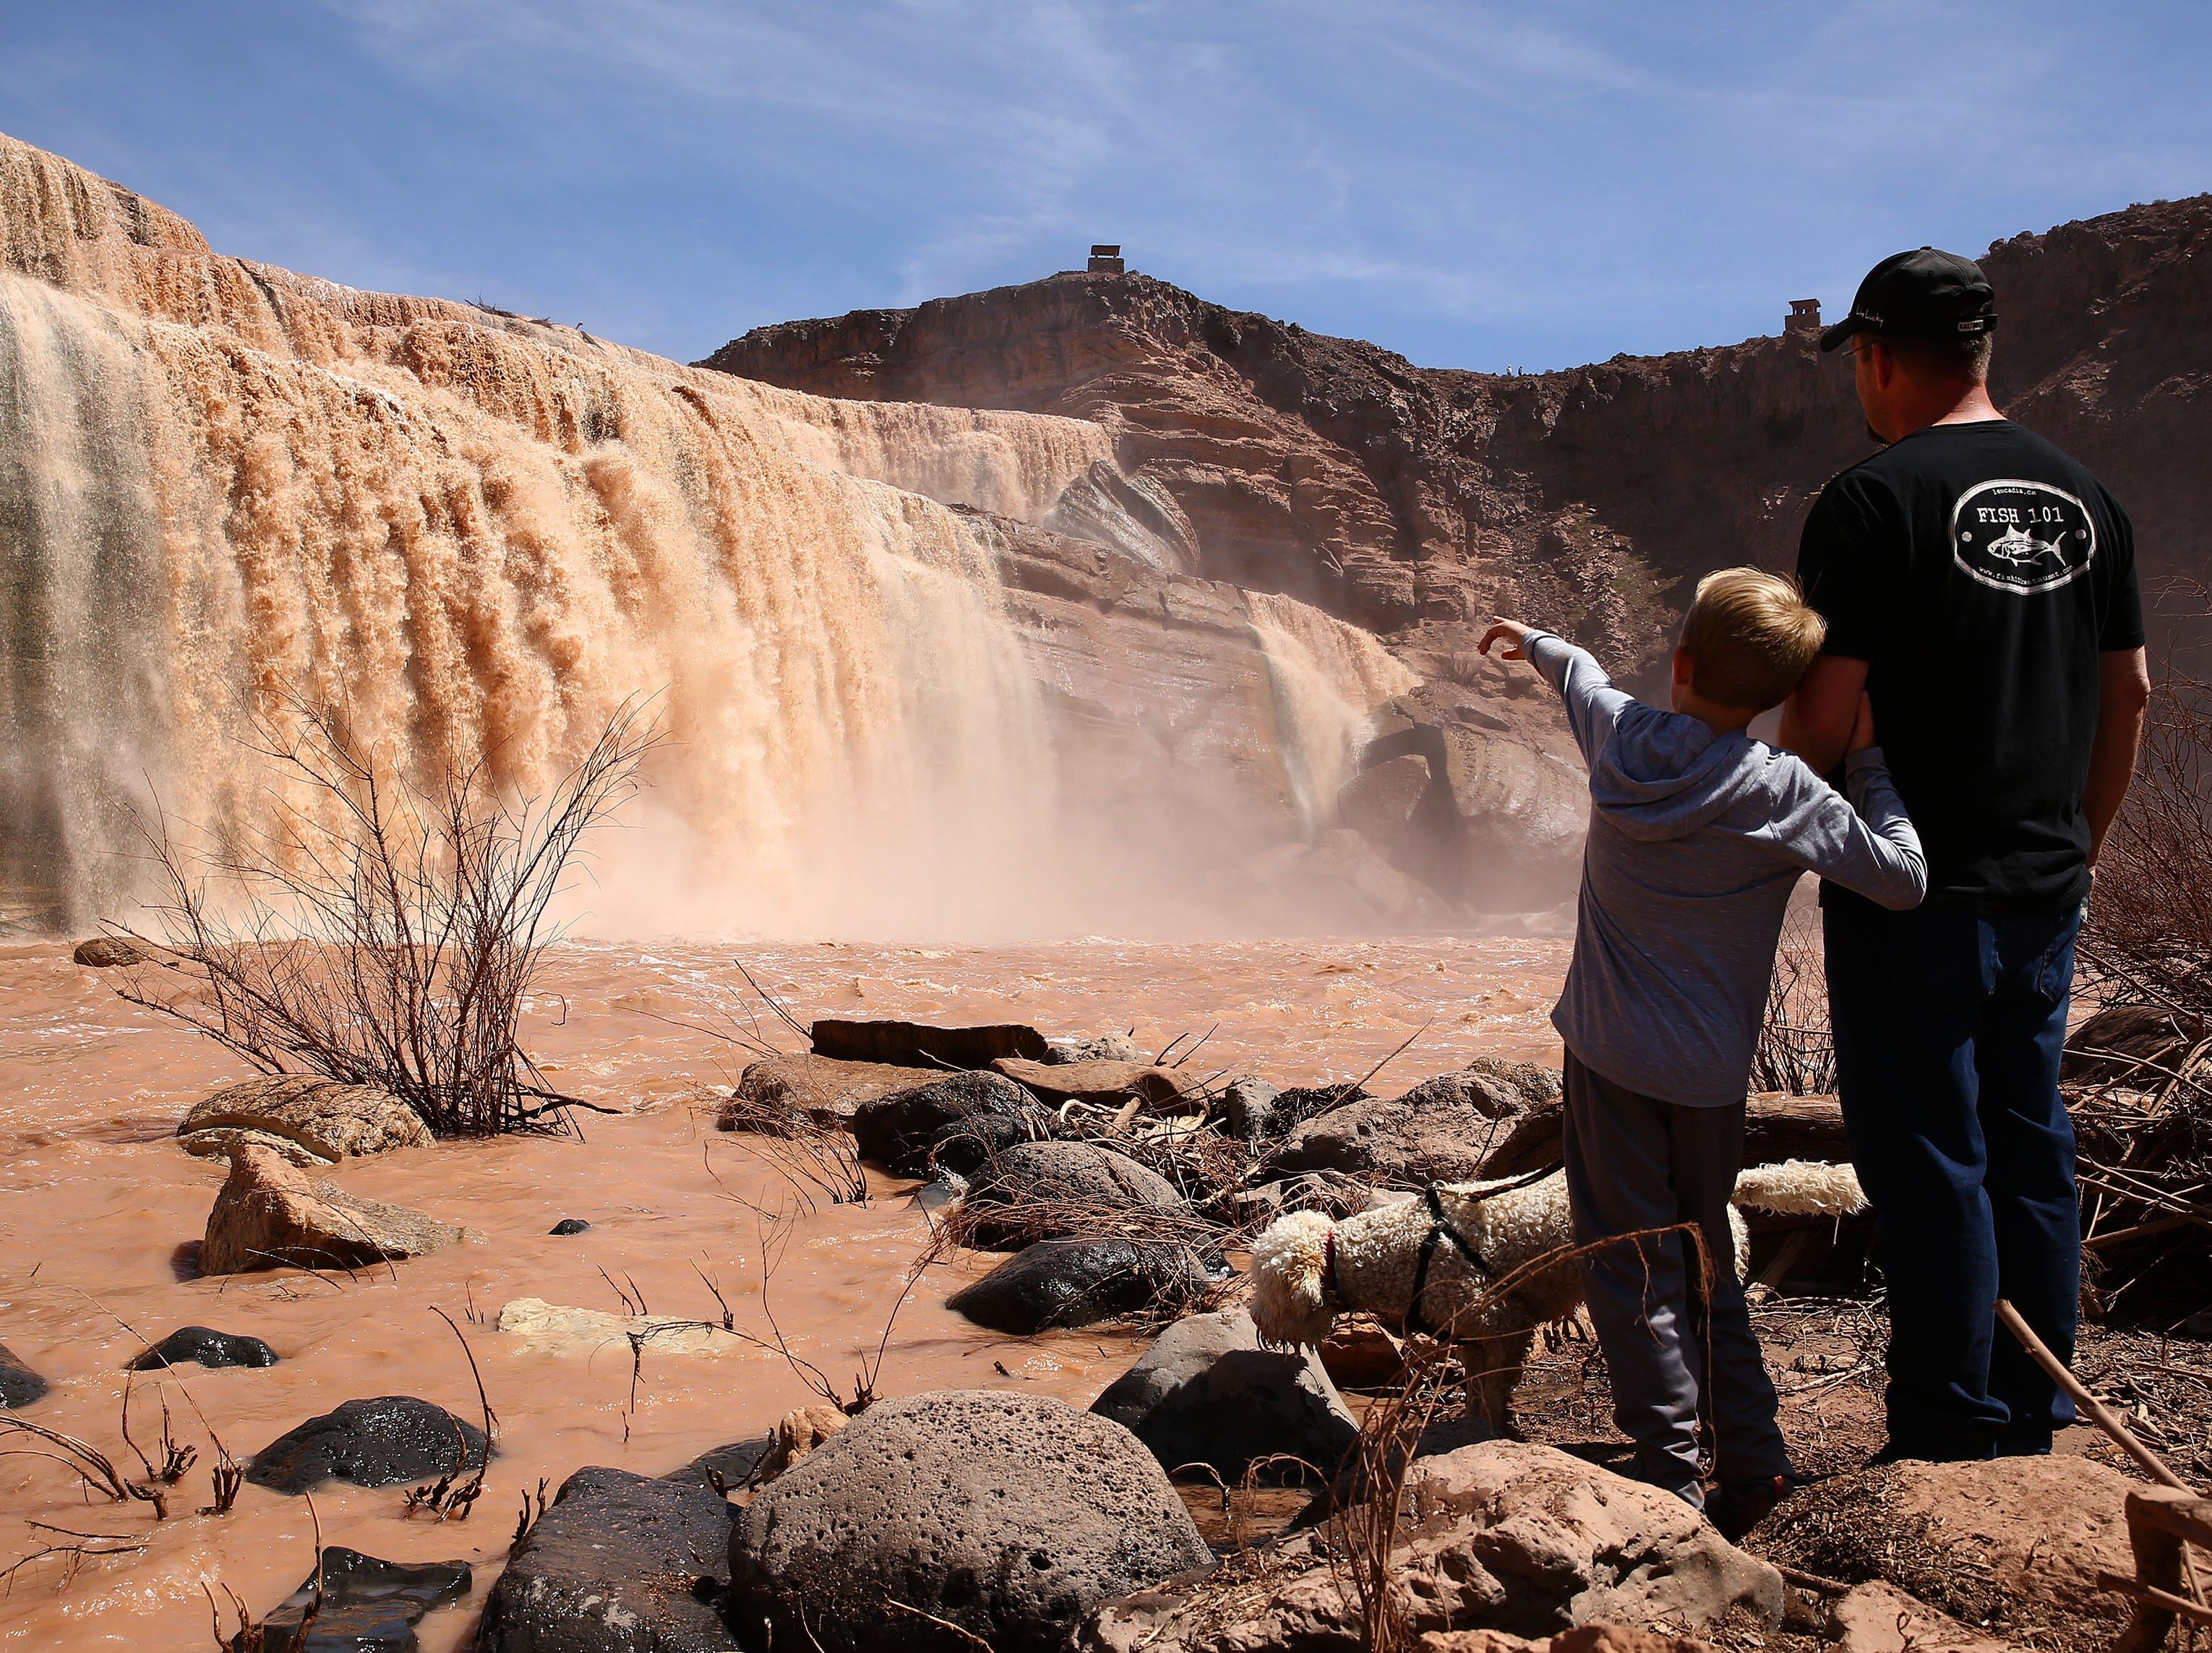 Andy St. John and his son Luke enjoy the view of Grand Falls in the Painted Desert on the Navajo Nation on March 28, 2019, near Leupp, Arizona. Melted snow and rain travels down the Little Colorado River to the 185-foot fall a.k.a. Chocolate Falls. Grand Falls is 18 feet taller than Niagara Falls.